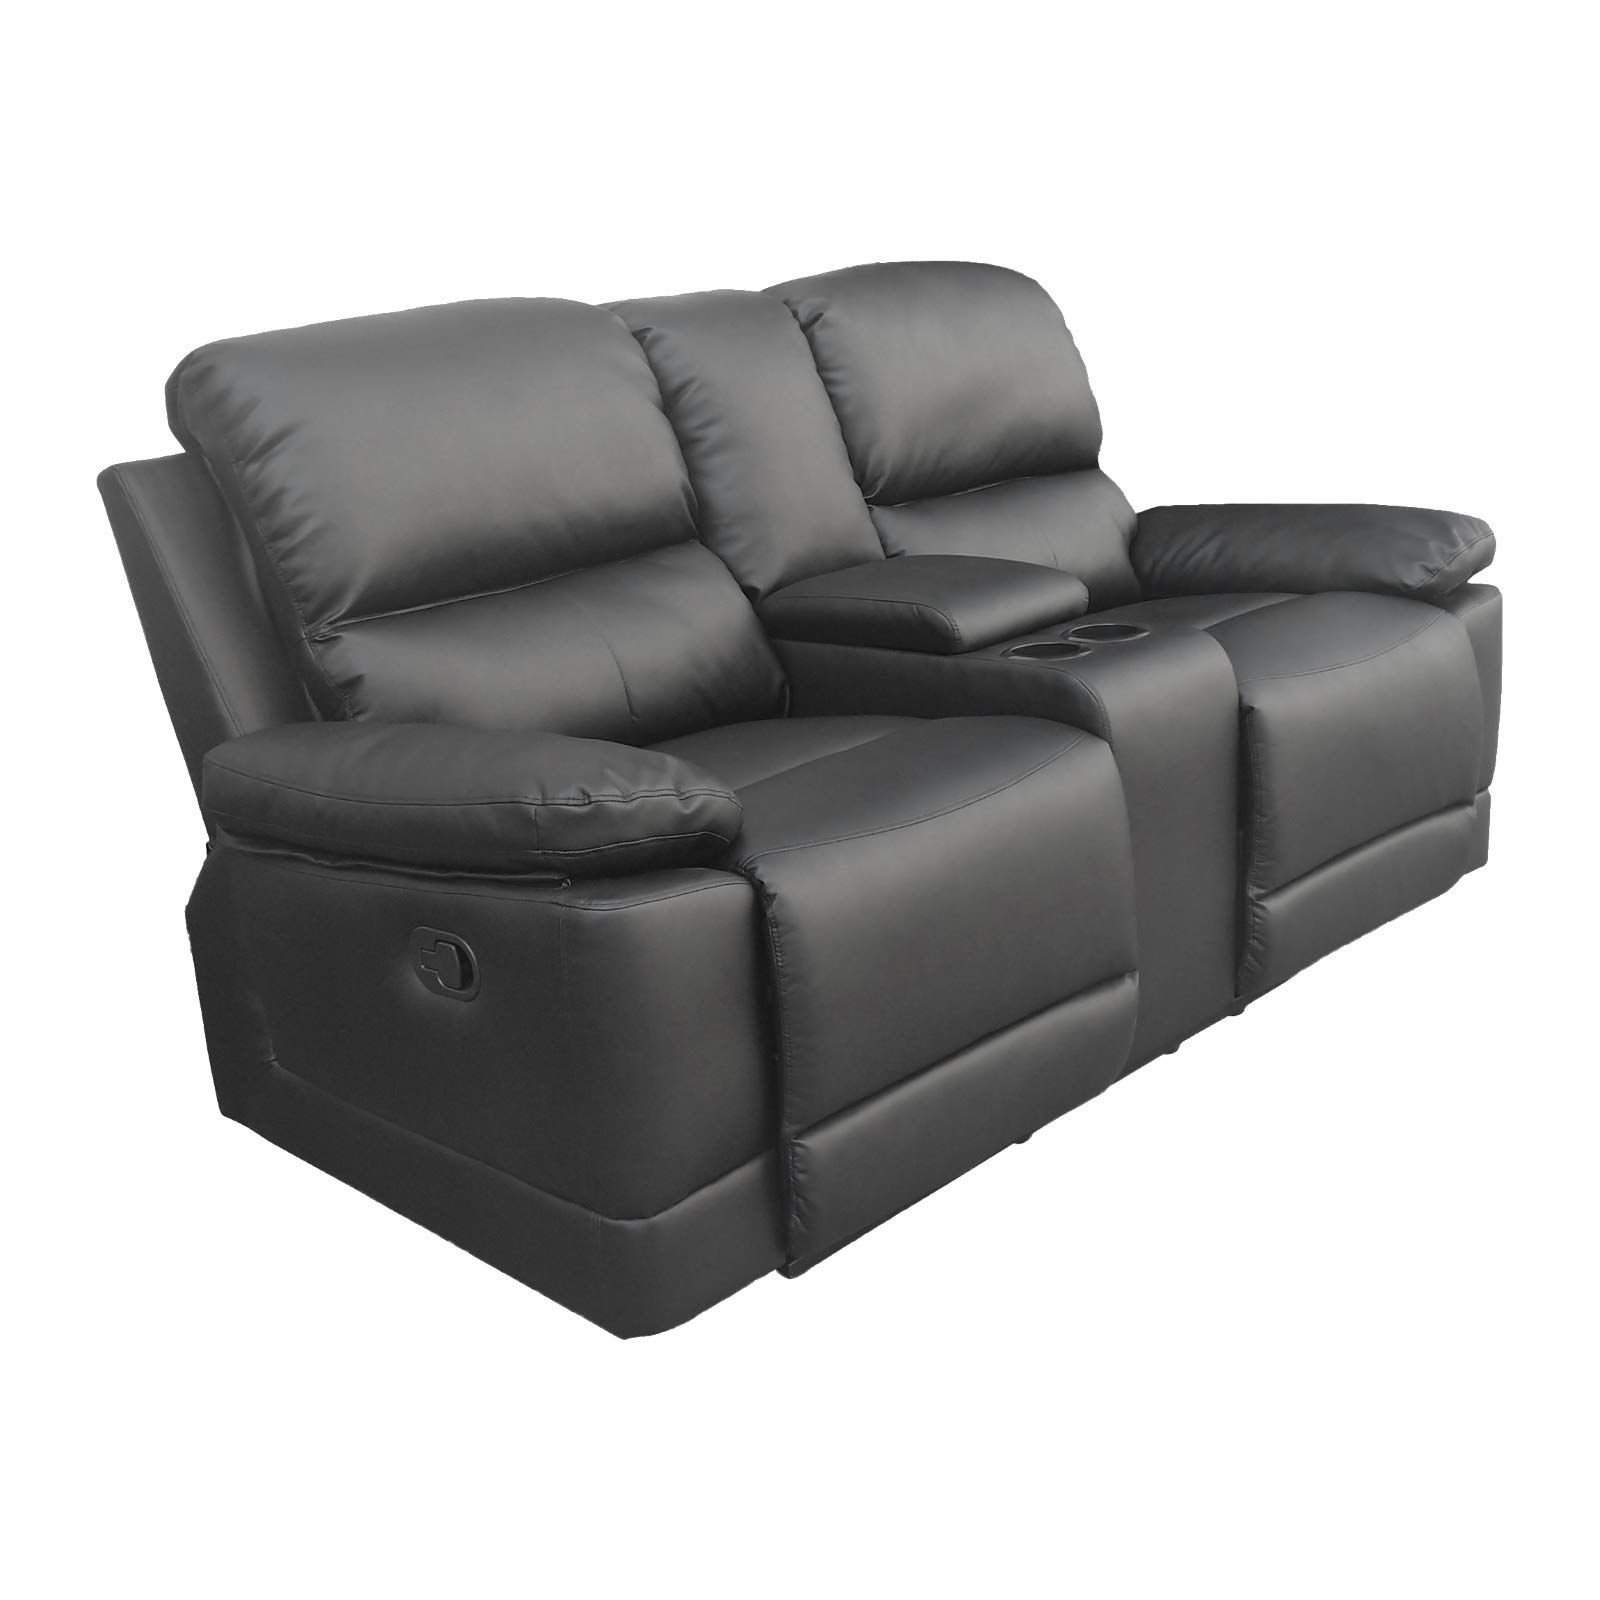 Macoshopde By Maco M Bel 2er Kinosessel Space Zweisitzer Doppelsitzer Cinema Relaxsessel Tv Sessel Mit Getr Nkehalter Verst Recliner Furniture Recliner Chair